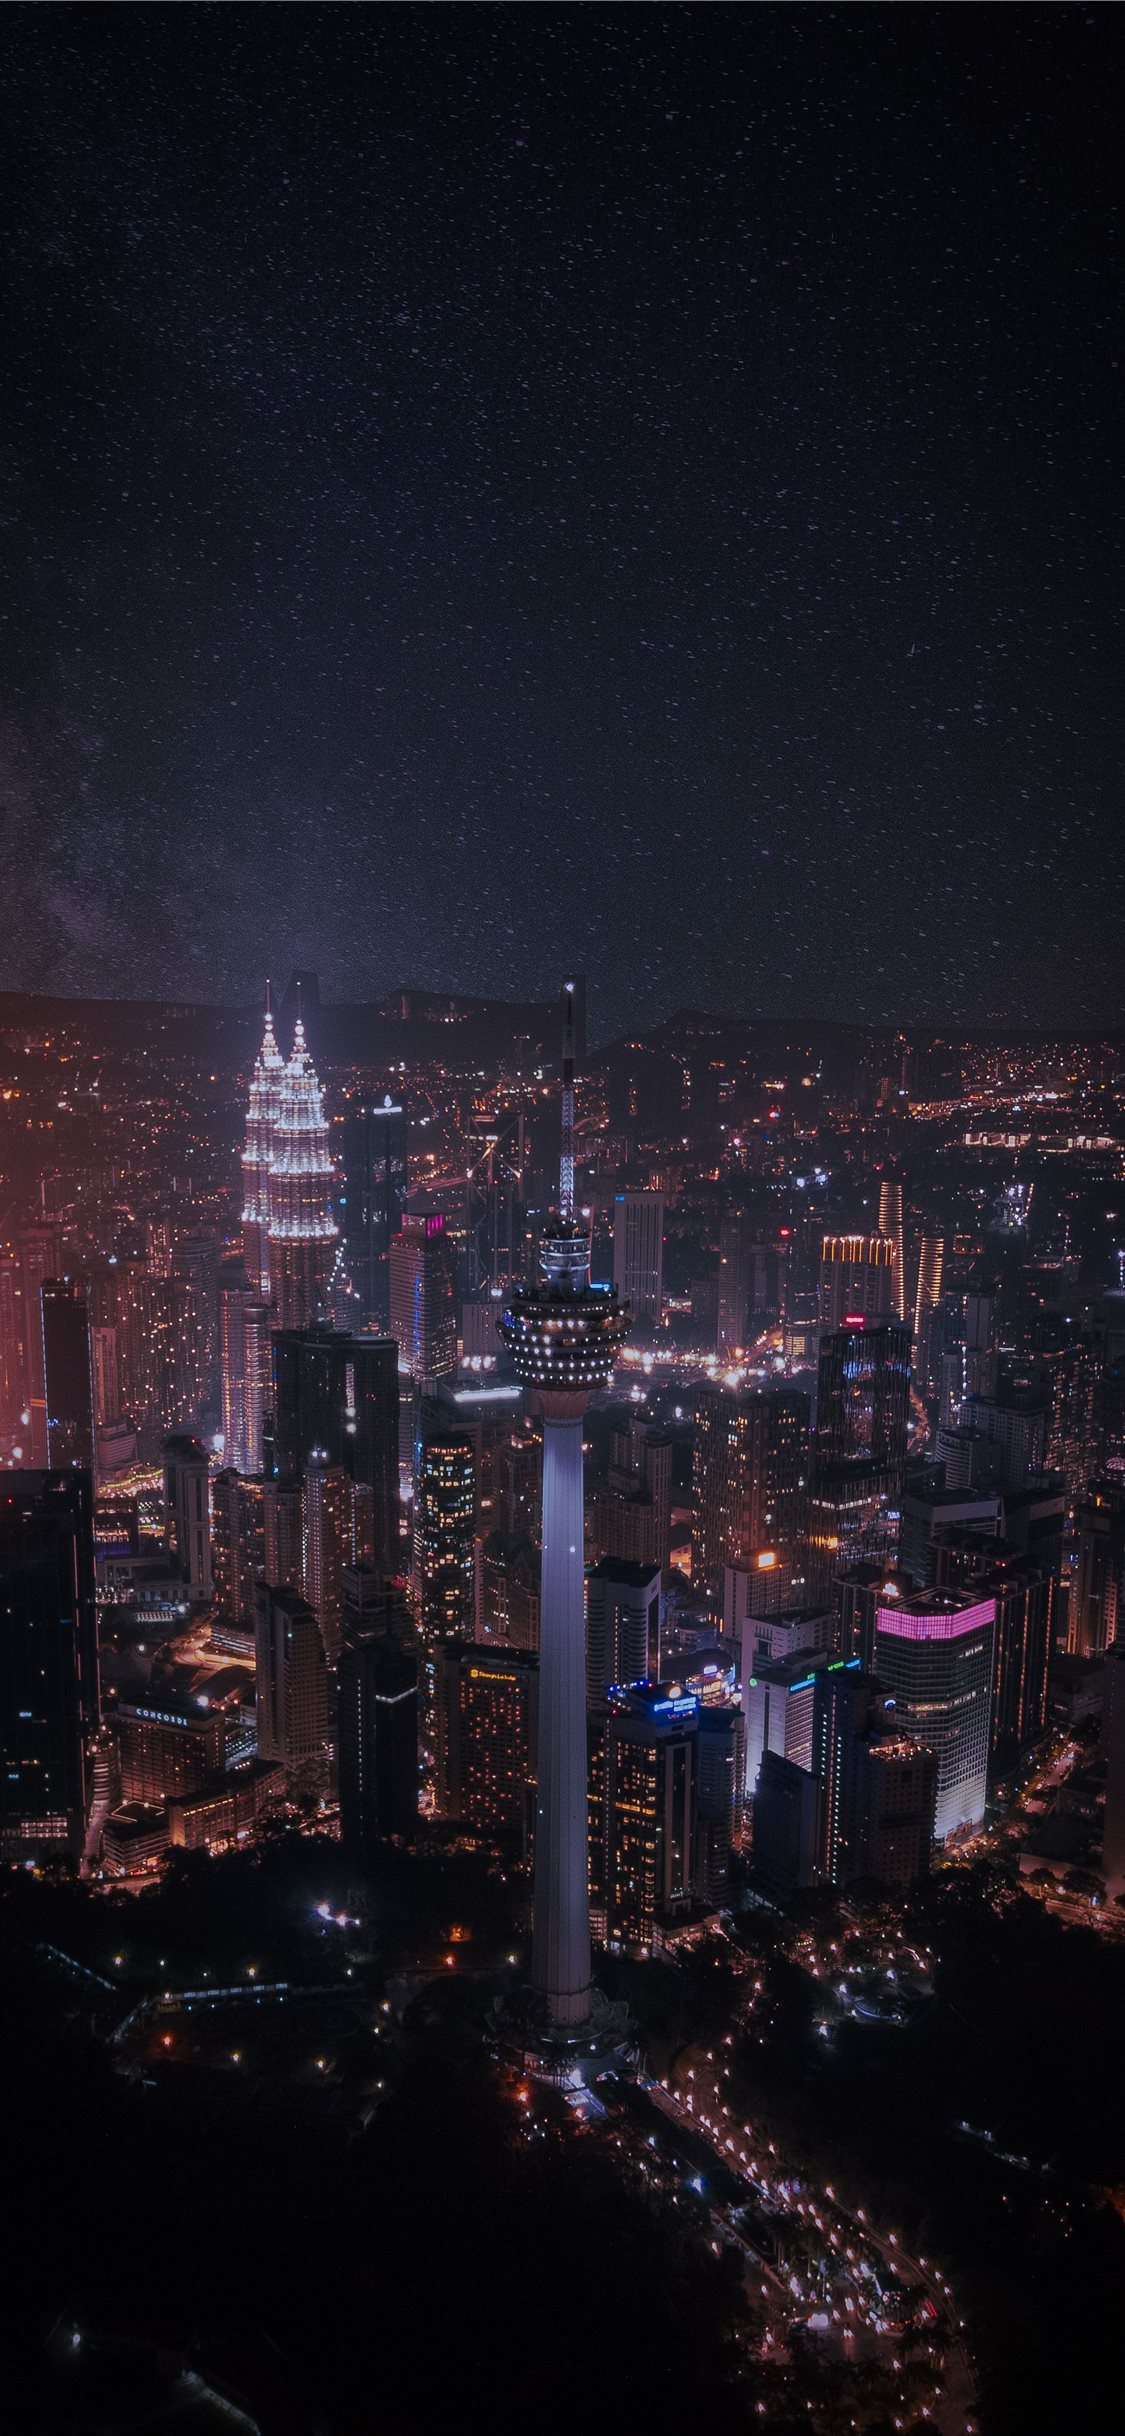 Imaginary Kuala Lumpur Iphone X Wallpapers Free Download